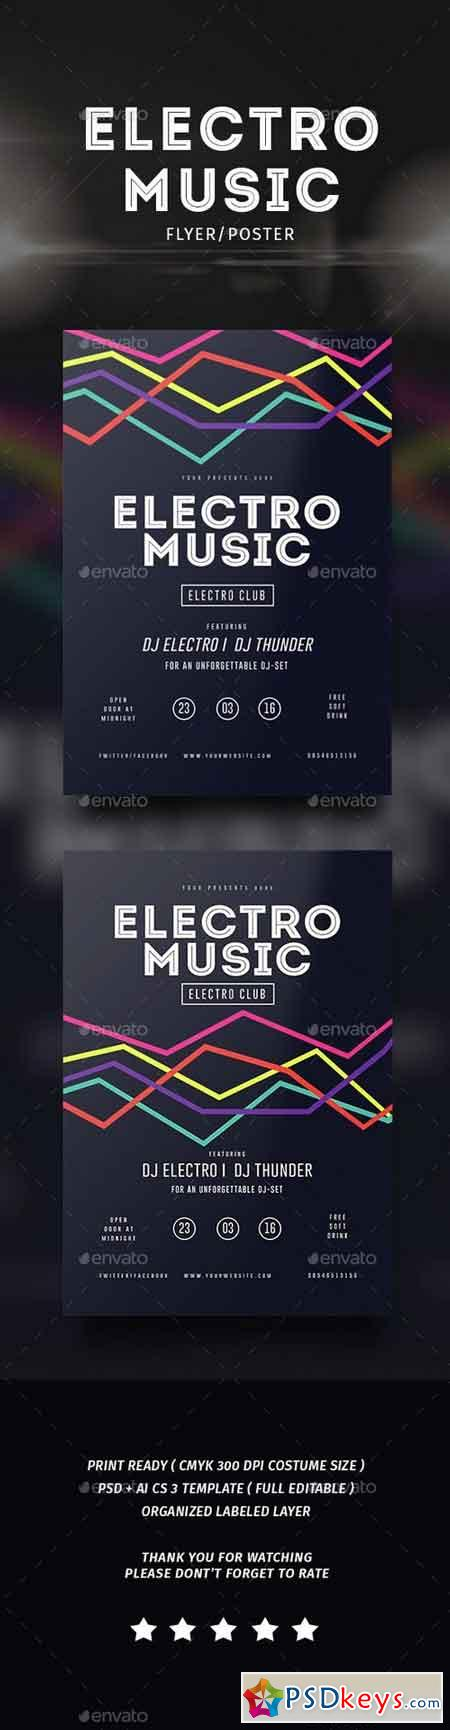 Electro Musik Flyer & Poster 14526283